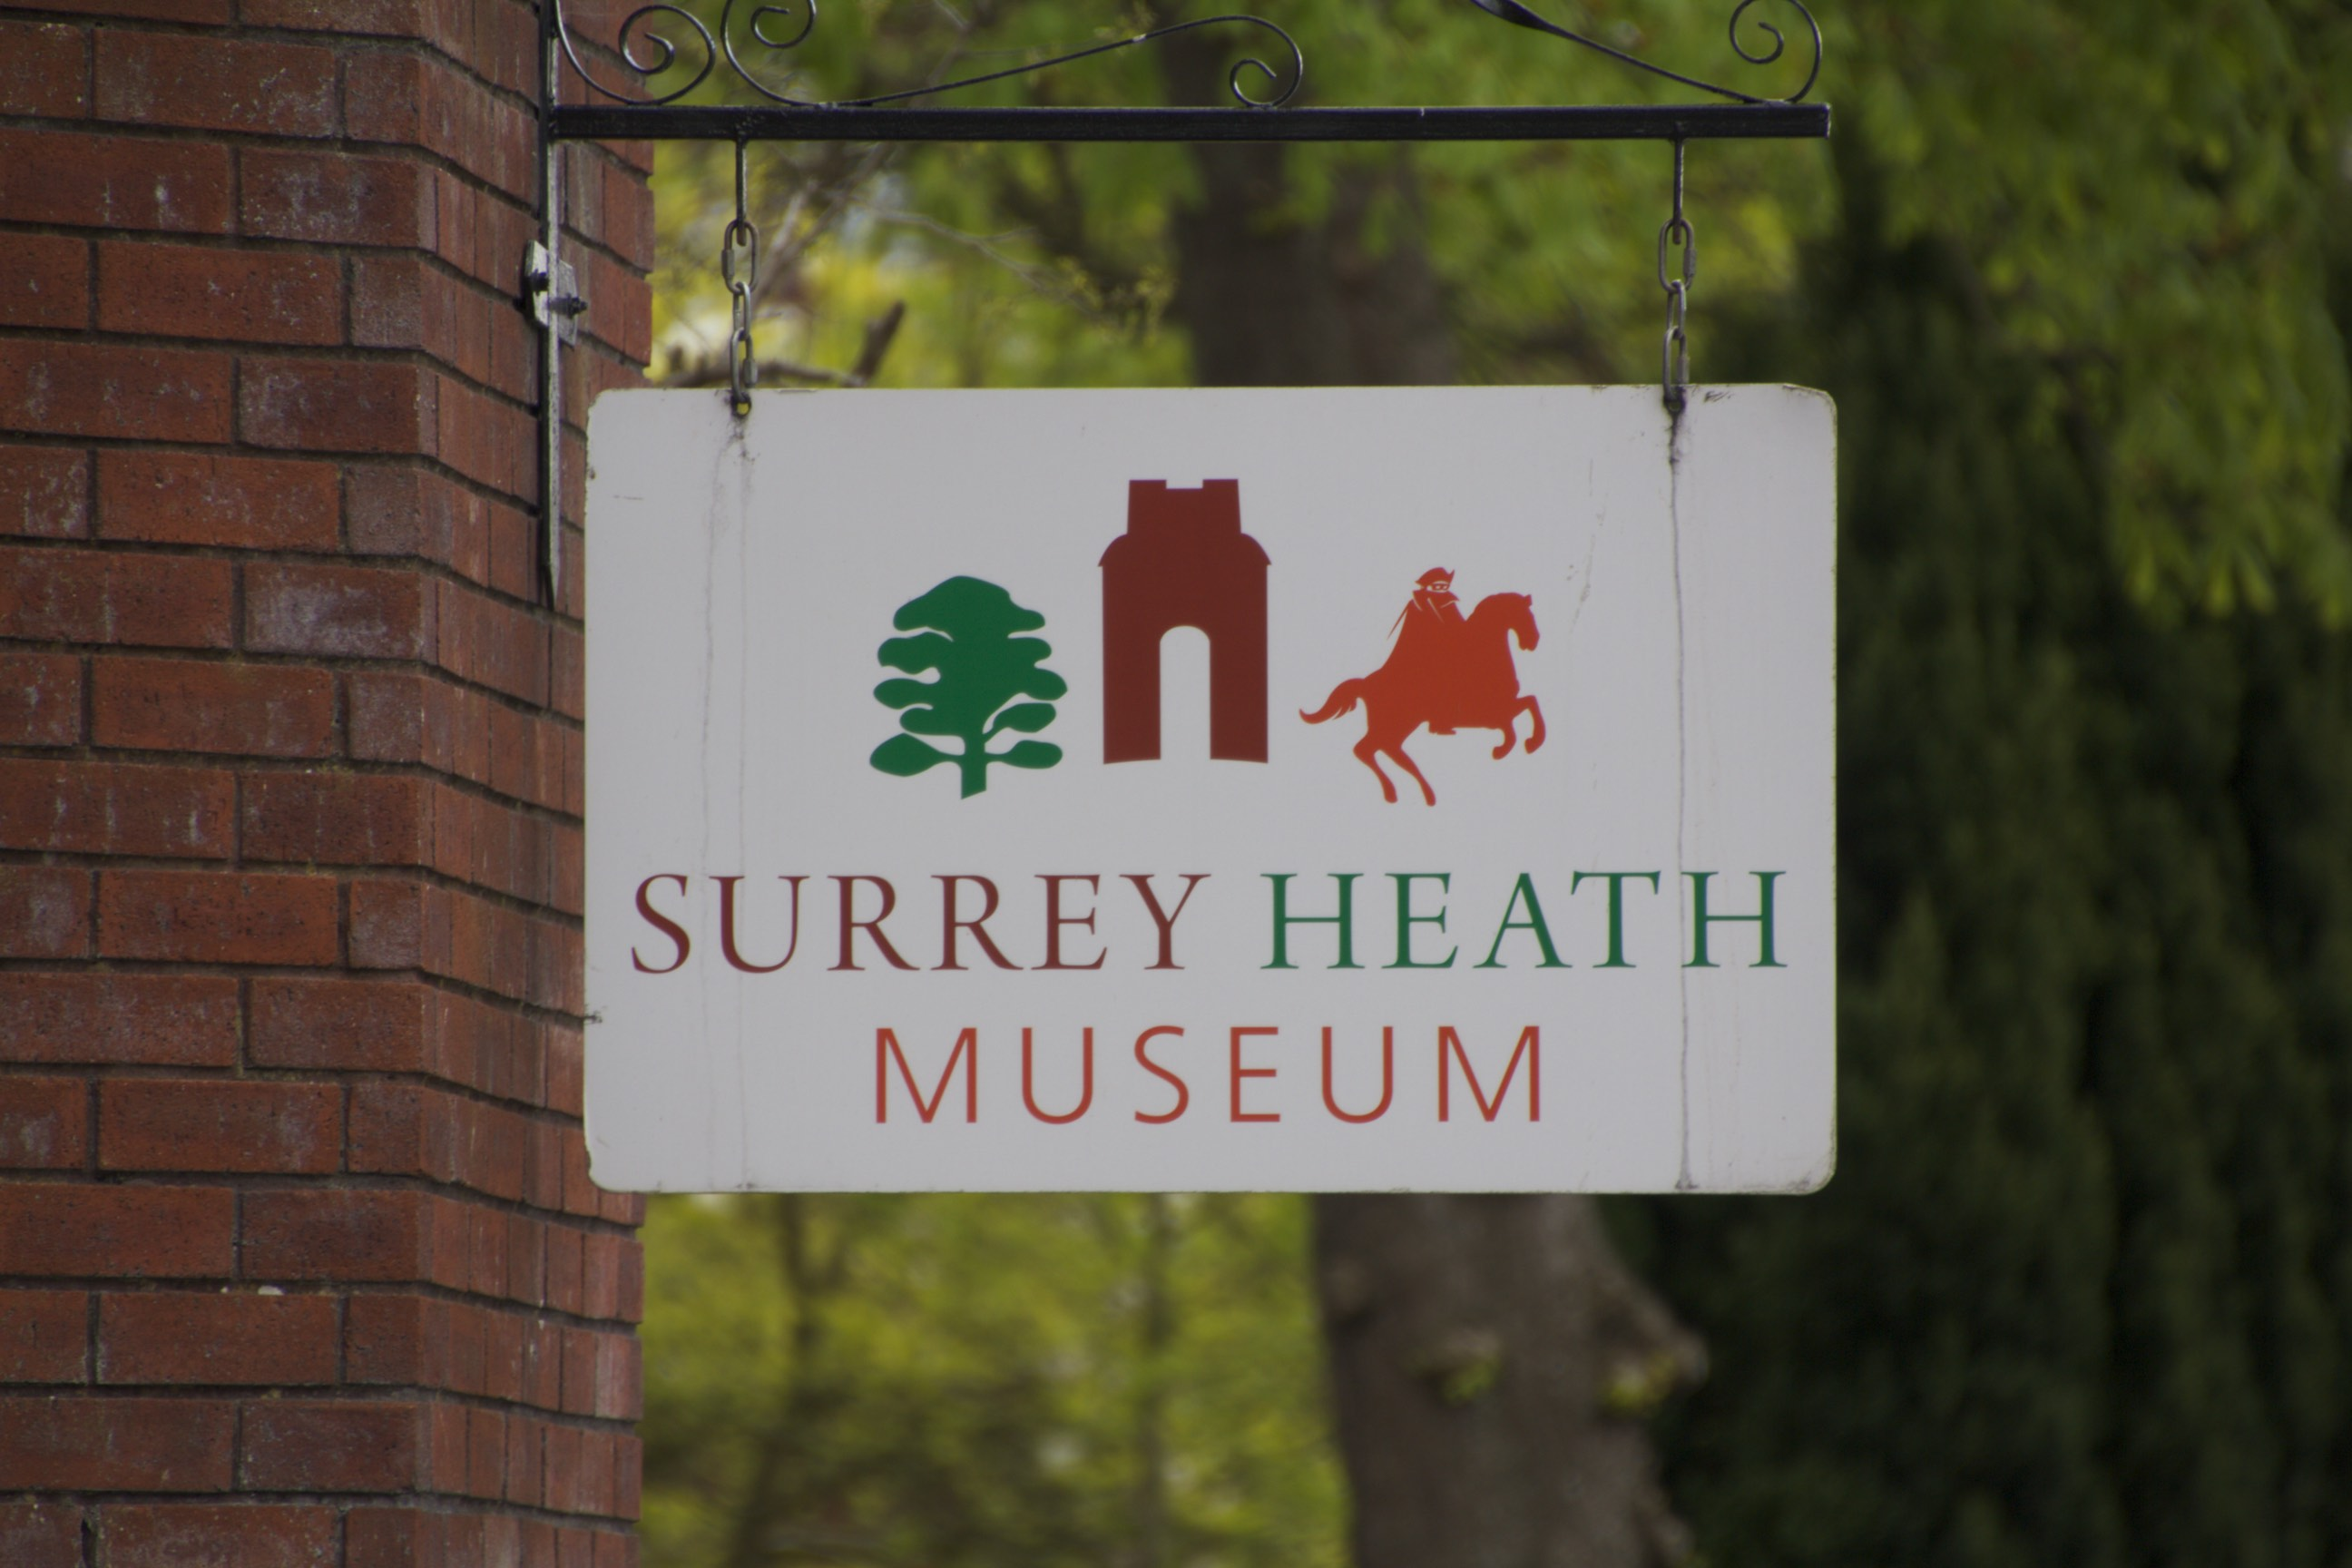 Surrey Heath Museum